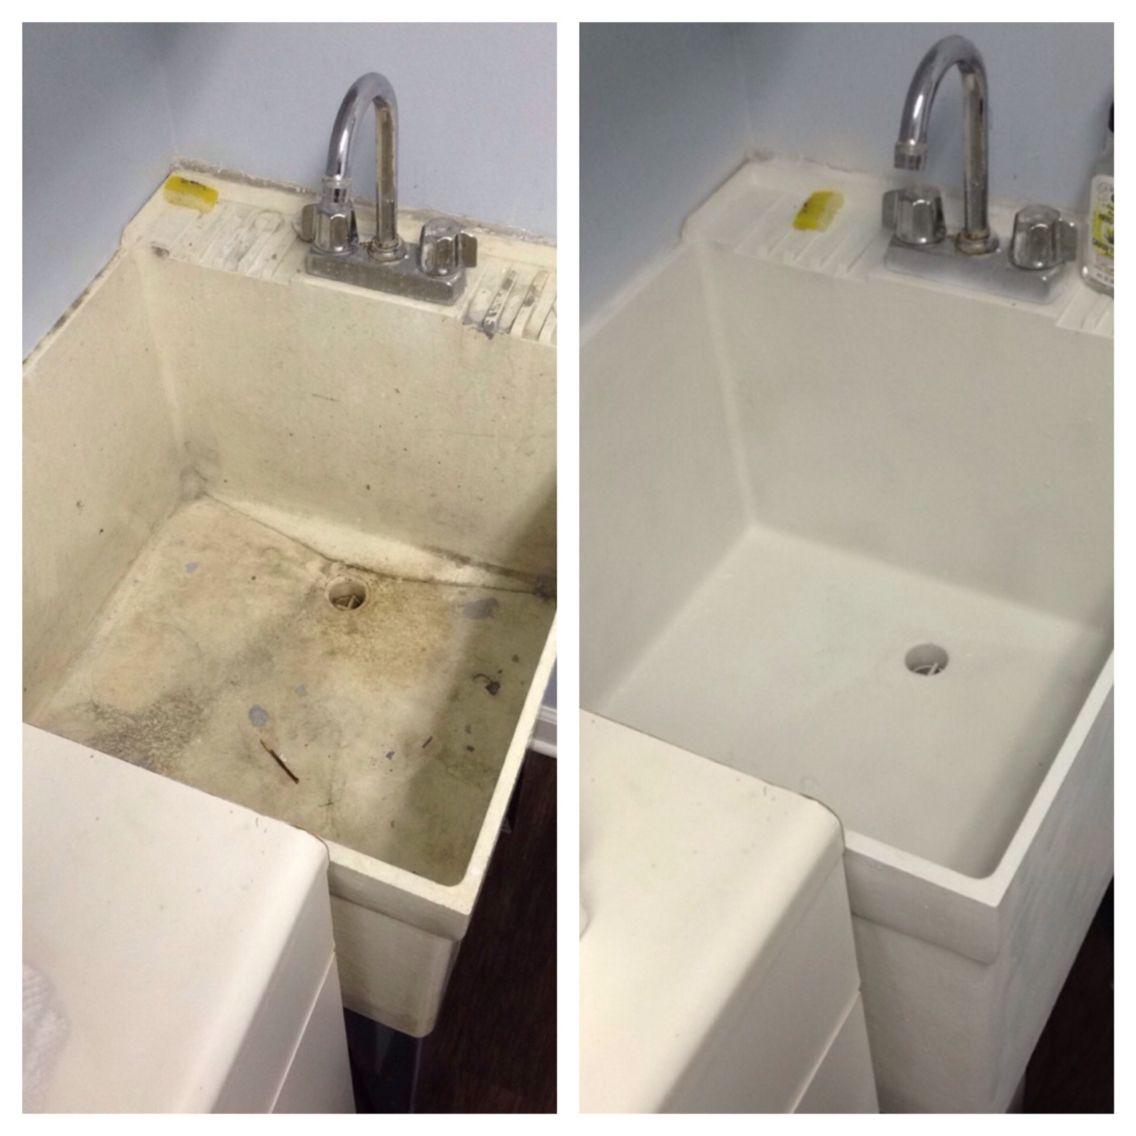 Garage Utility Sink Slop Sink Makeover Laundry Room In 2019 Laundry Room Sink